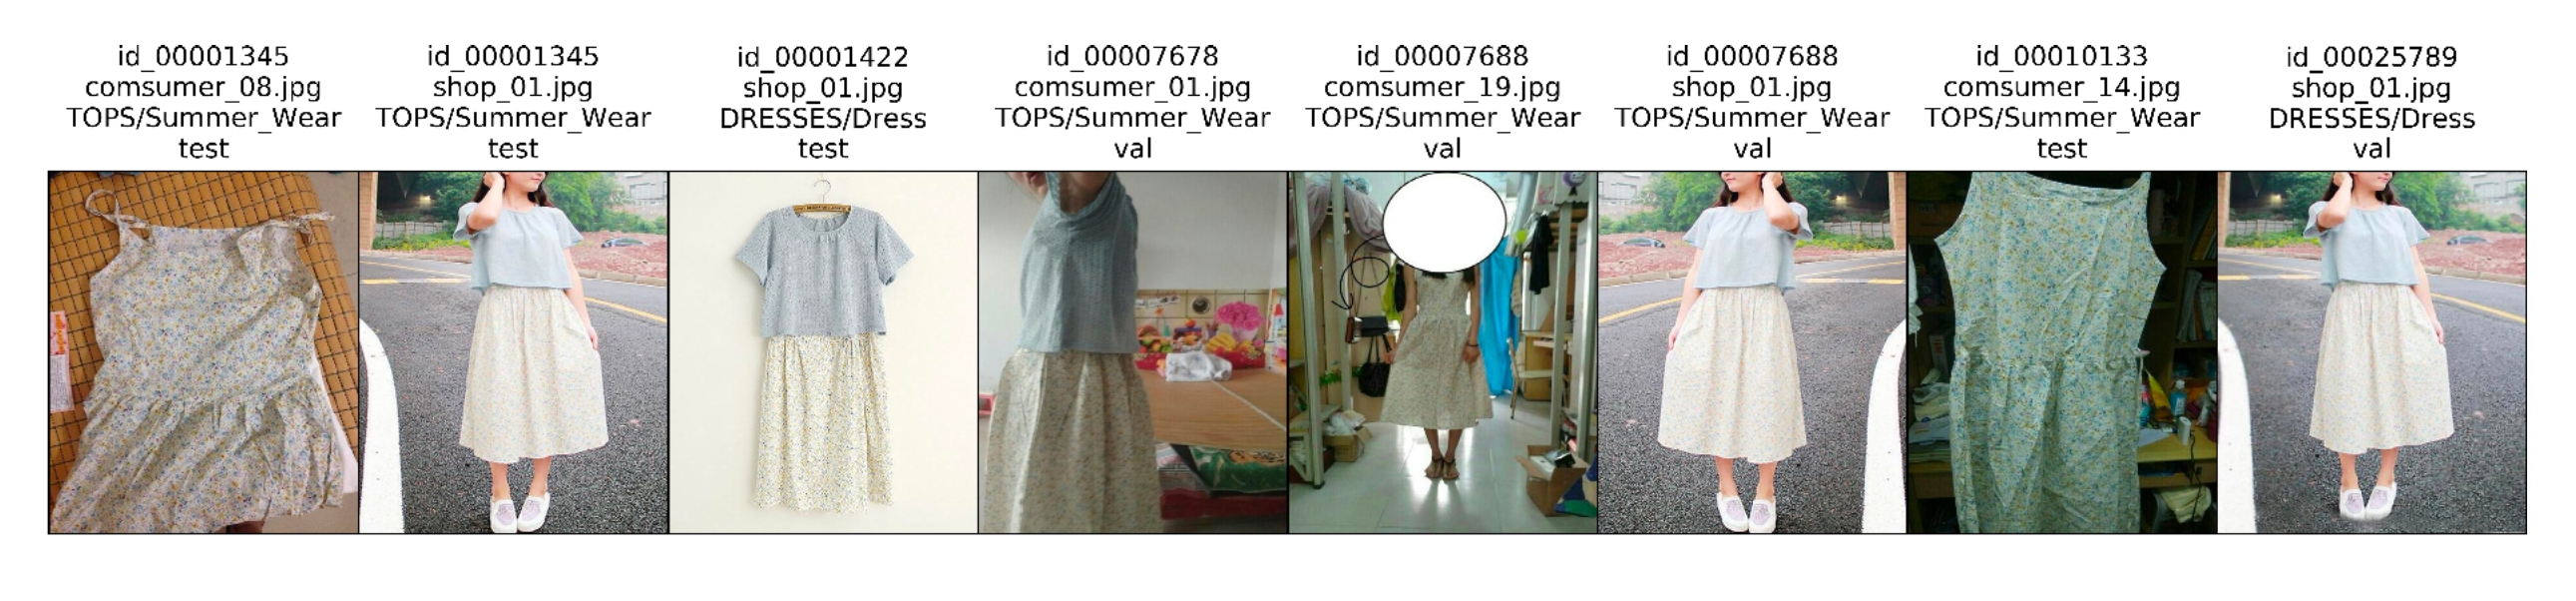 A collection of photos that depict, we believe, the same clothing item - dress visible in the left most photo.